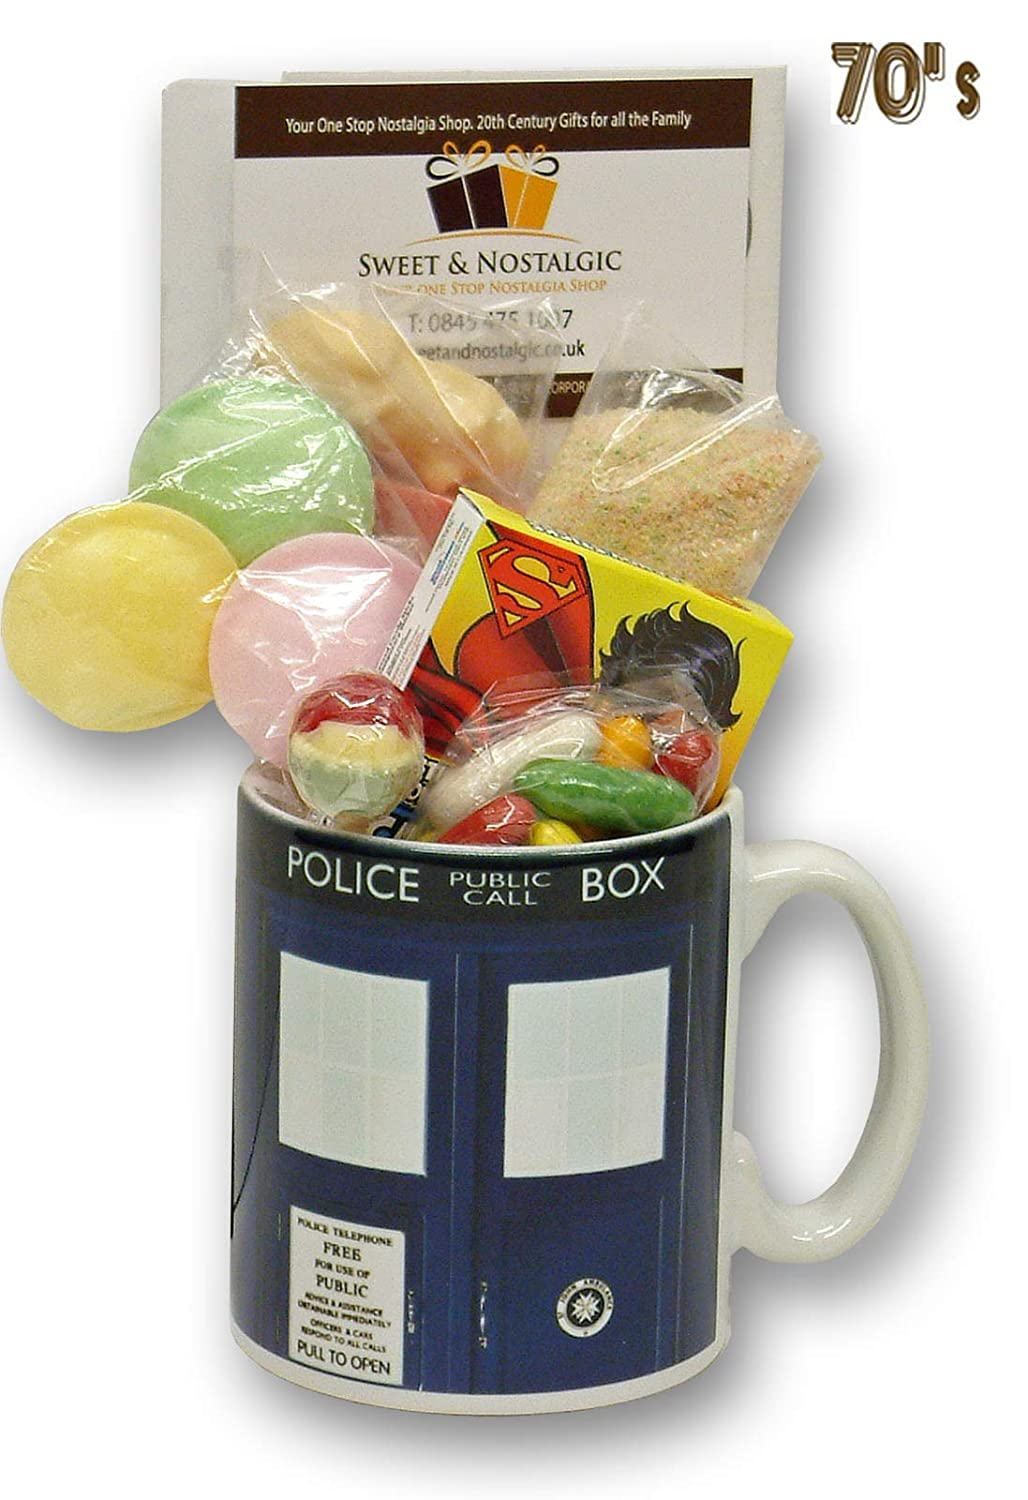 Dr Who Tardis Mug with a Time Travelling Selection of 70's Sweets 630gms